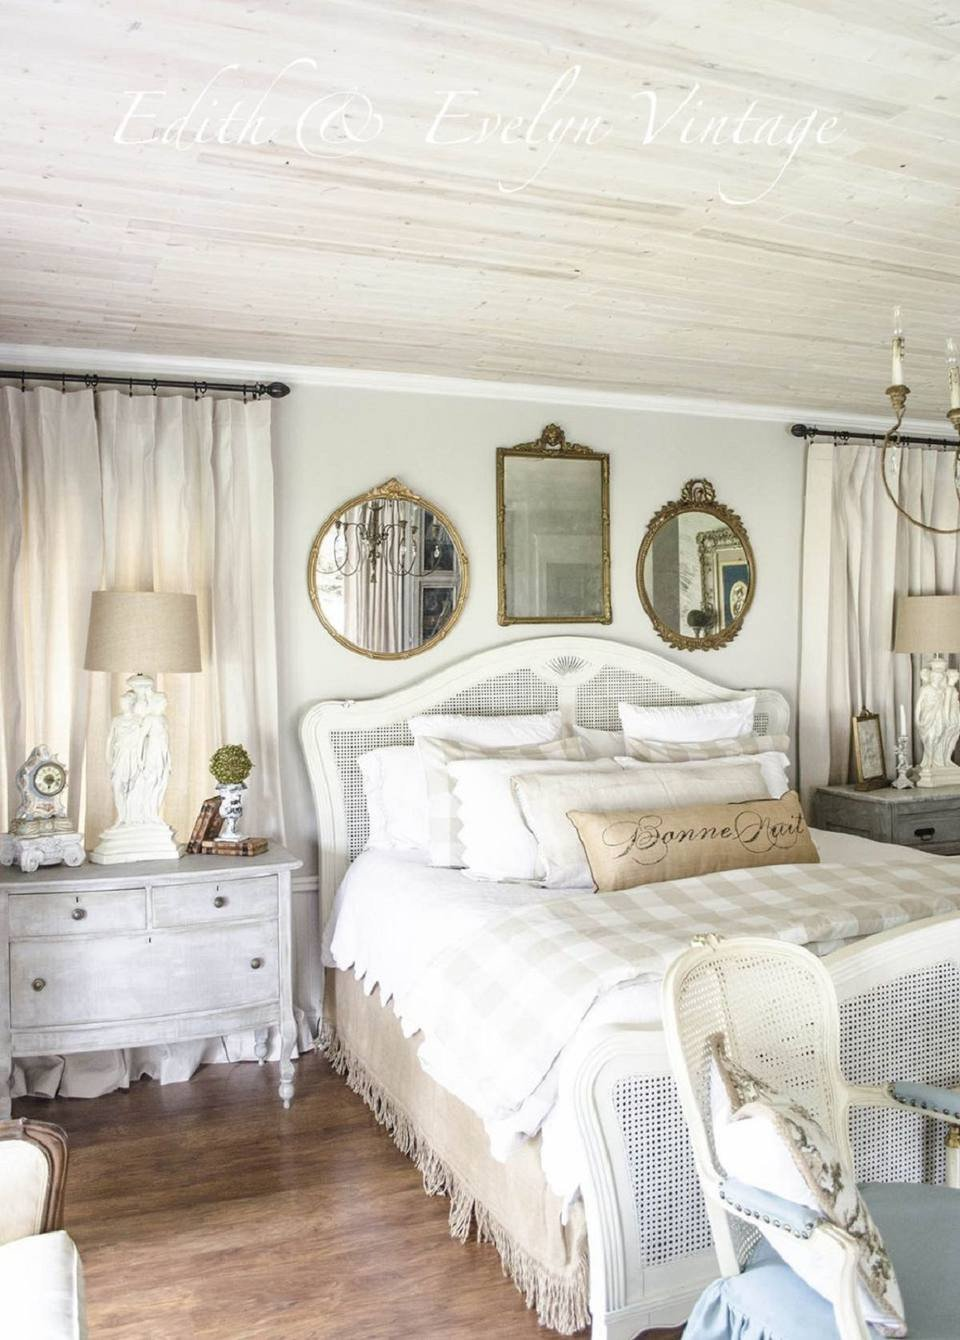 French Provincial Bedroom Furniture Awesome Ideas for French Country Style Bedroom Decor